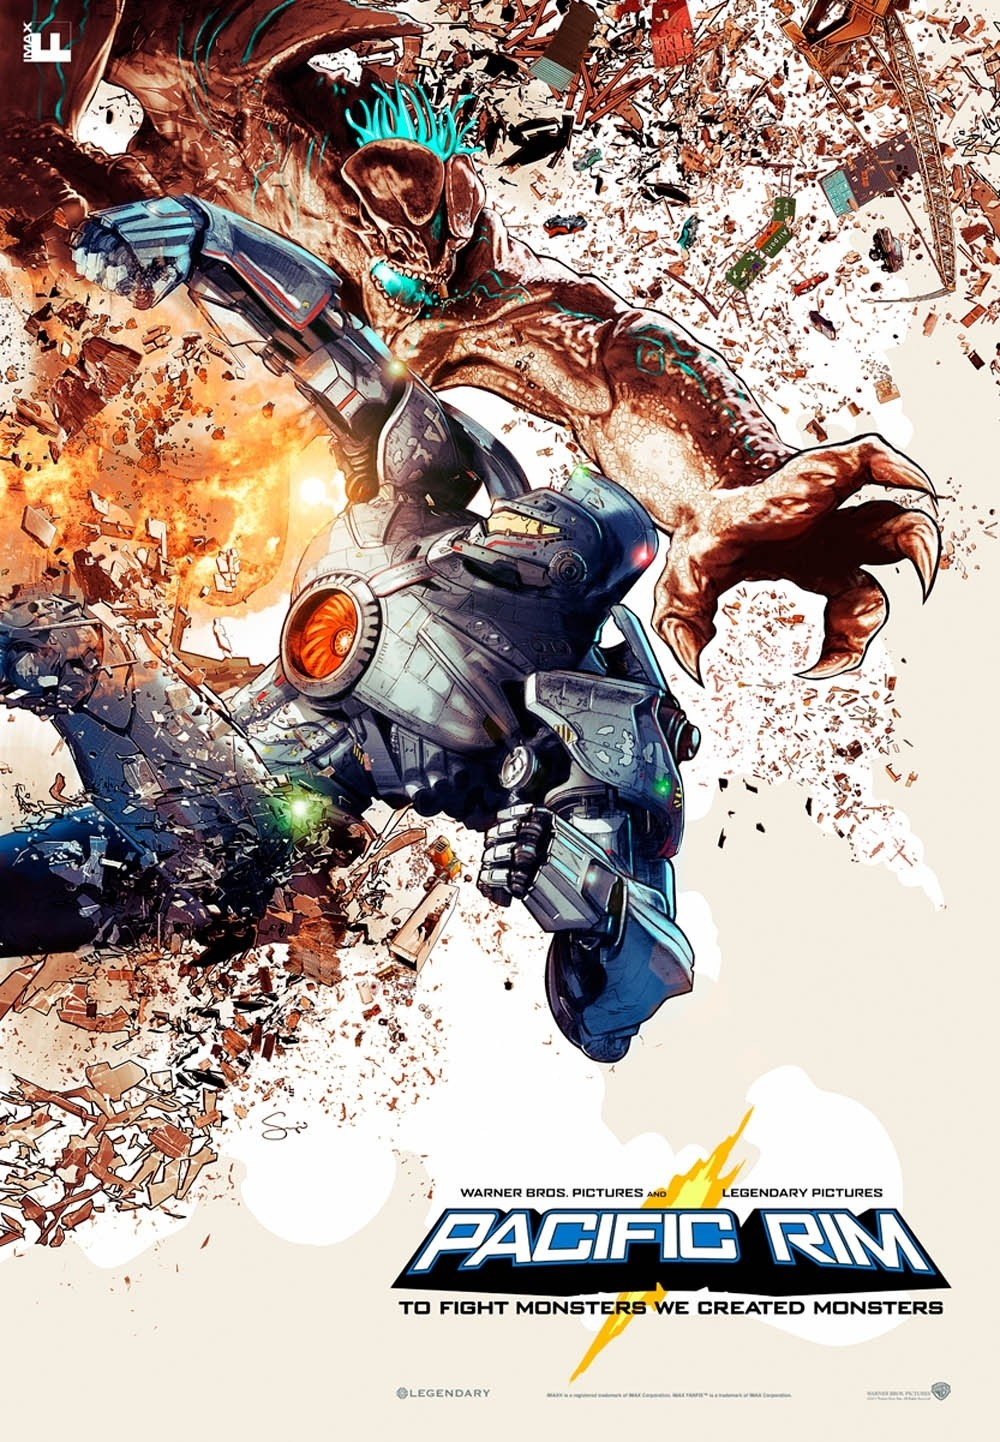 pacific rim 2017 movie poster - photo #8